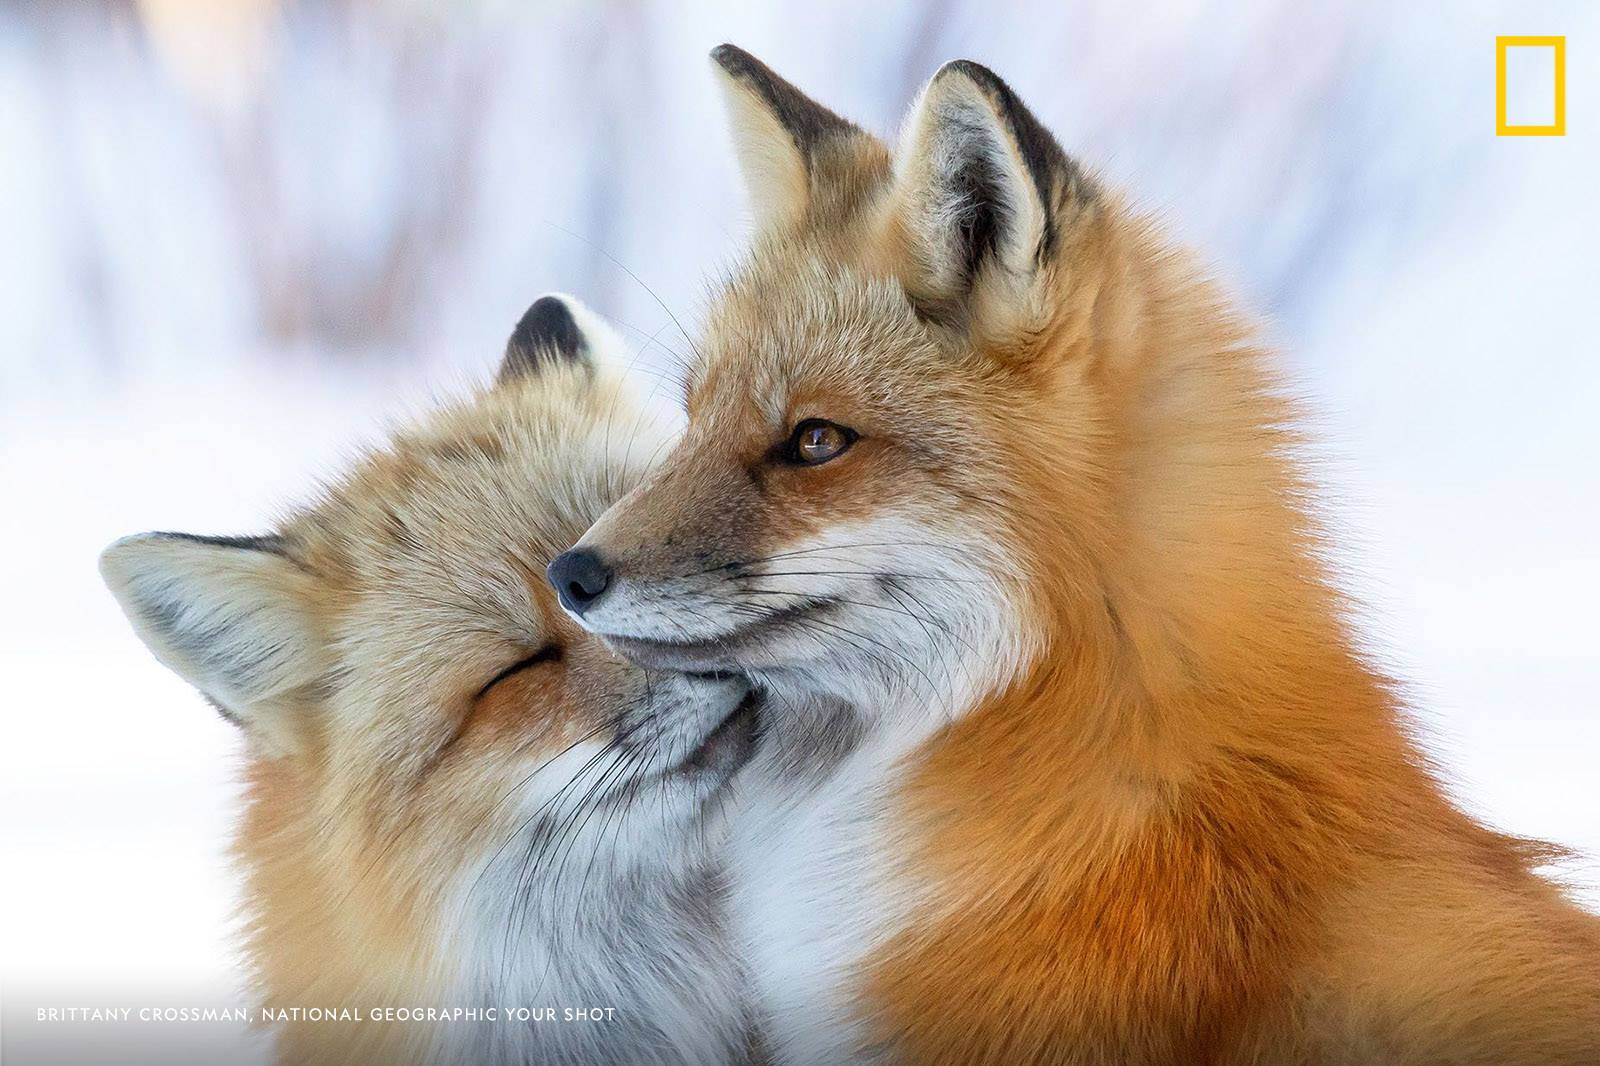 Your Shot photographer Brittany Crossman captured the moment these two red foxes cozy up on the East coast of Canada. https://on.natgeo.com/2OnnU7l